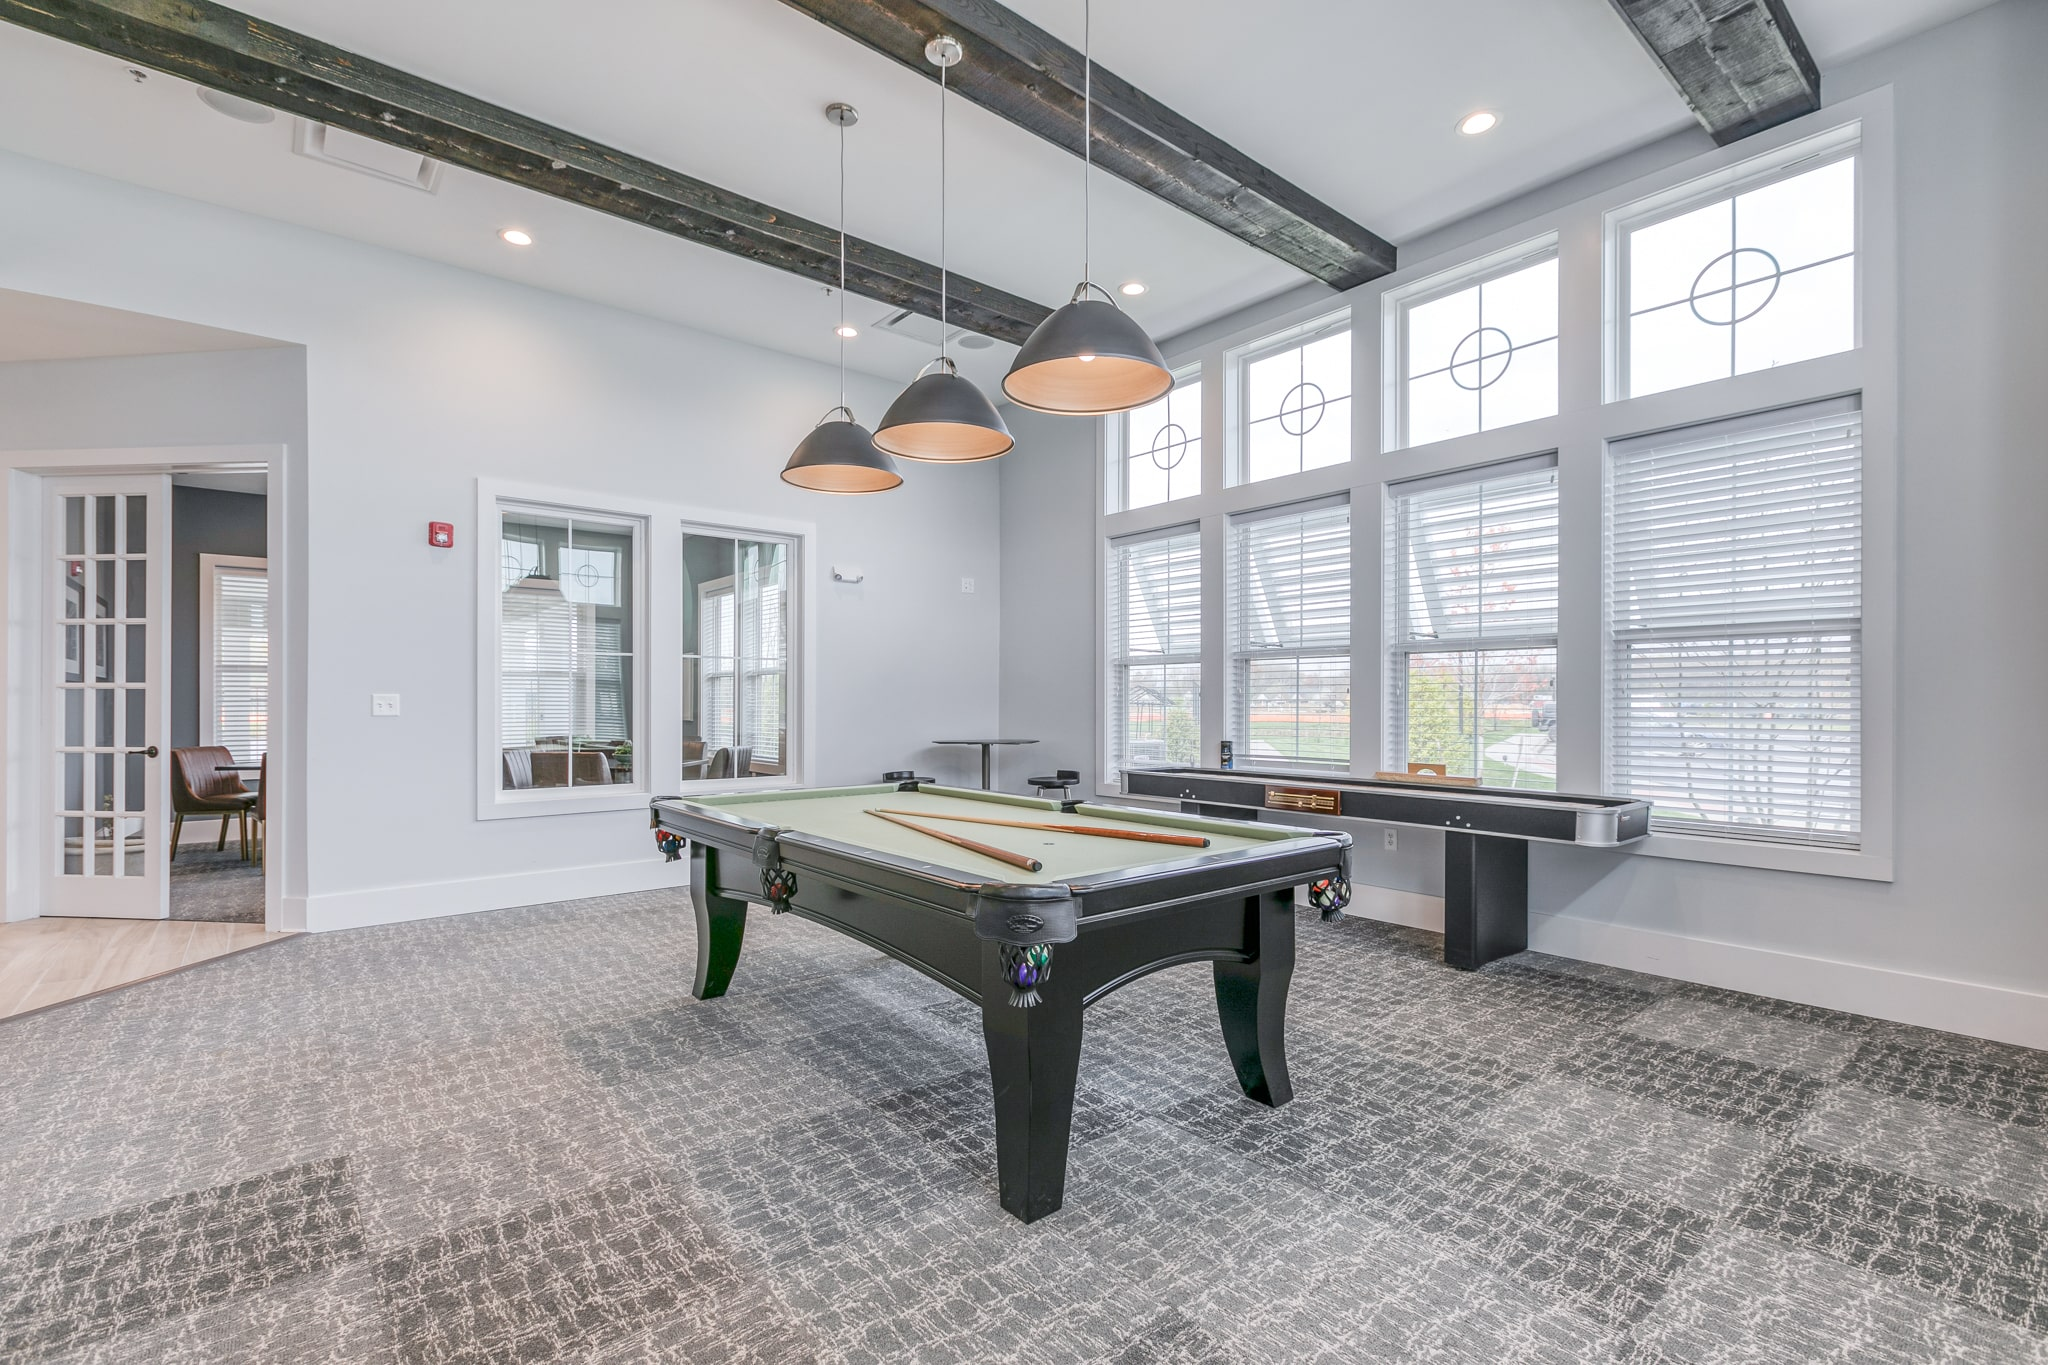 Image of a pool table inside the Bay Bride Cove Community Clubhouse